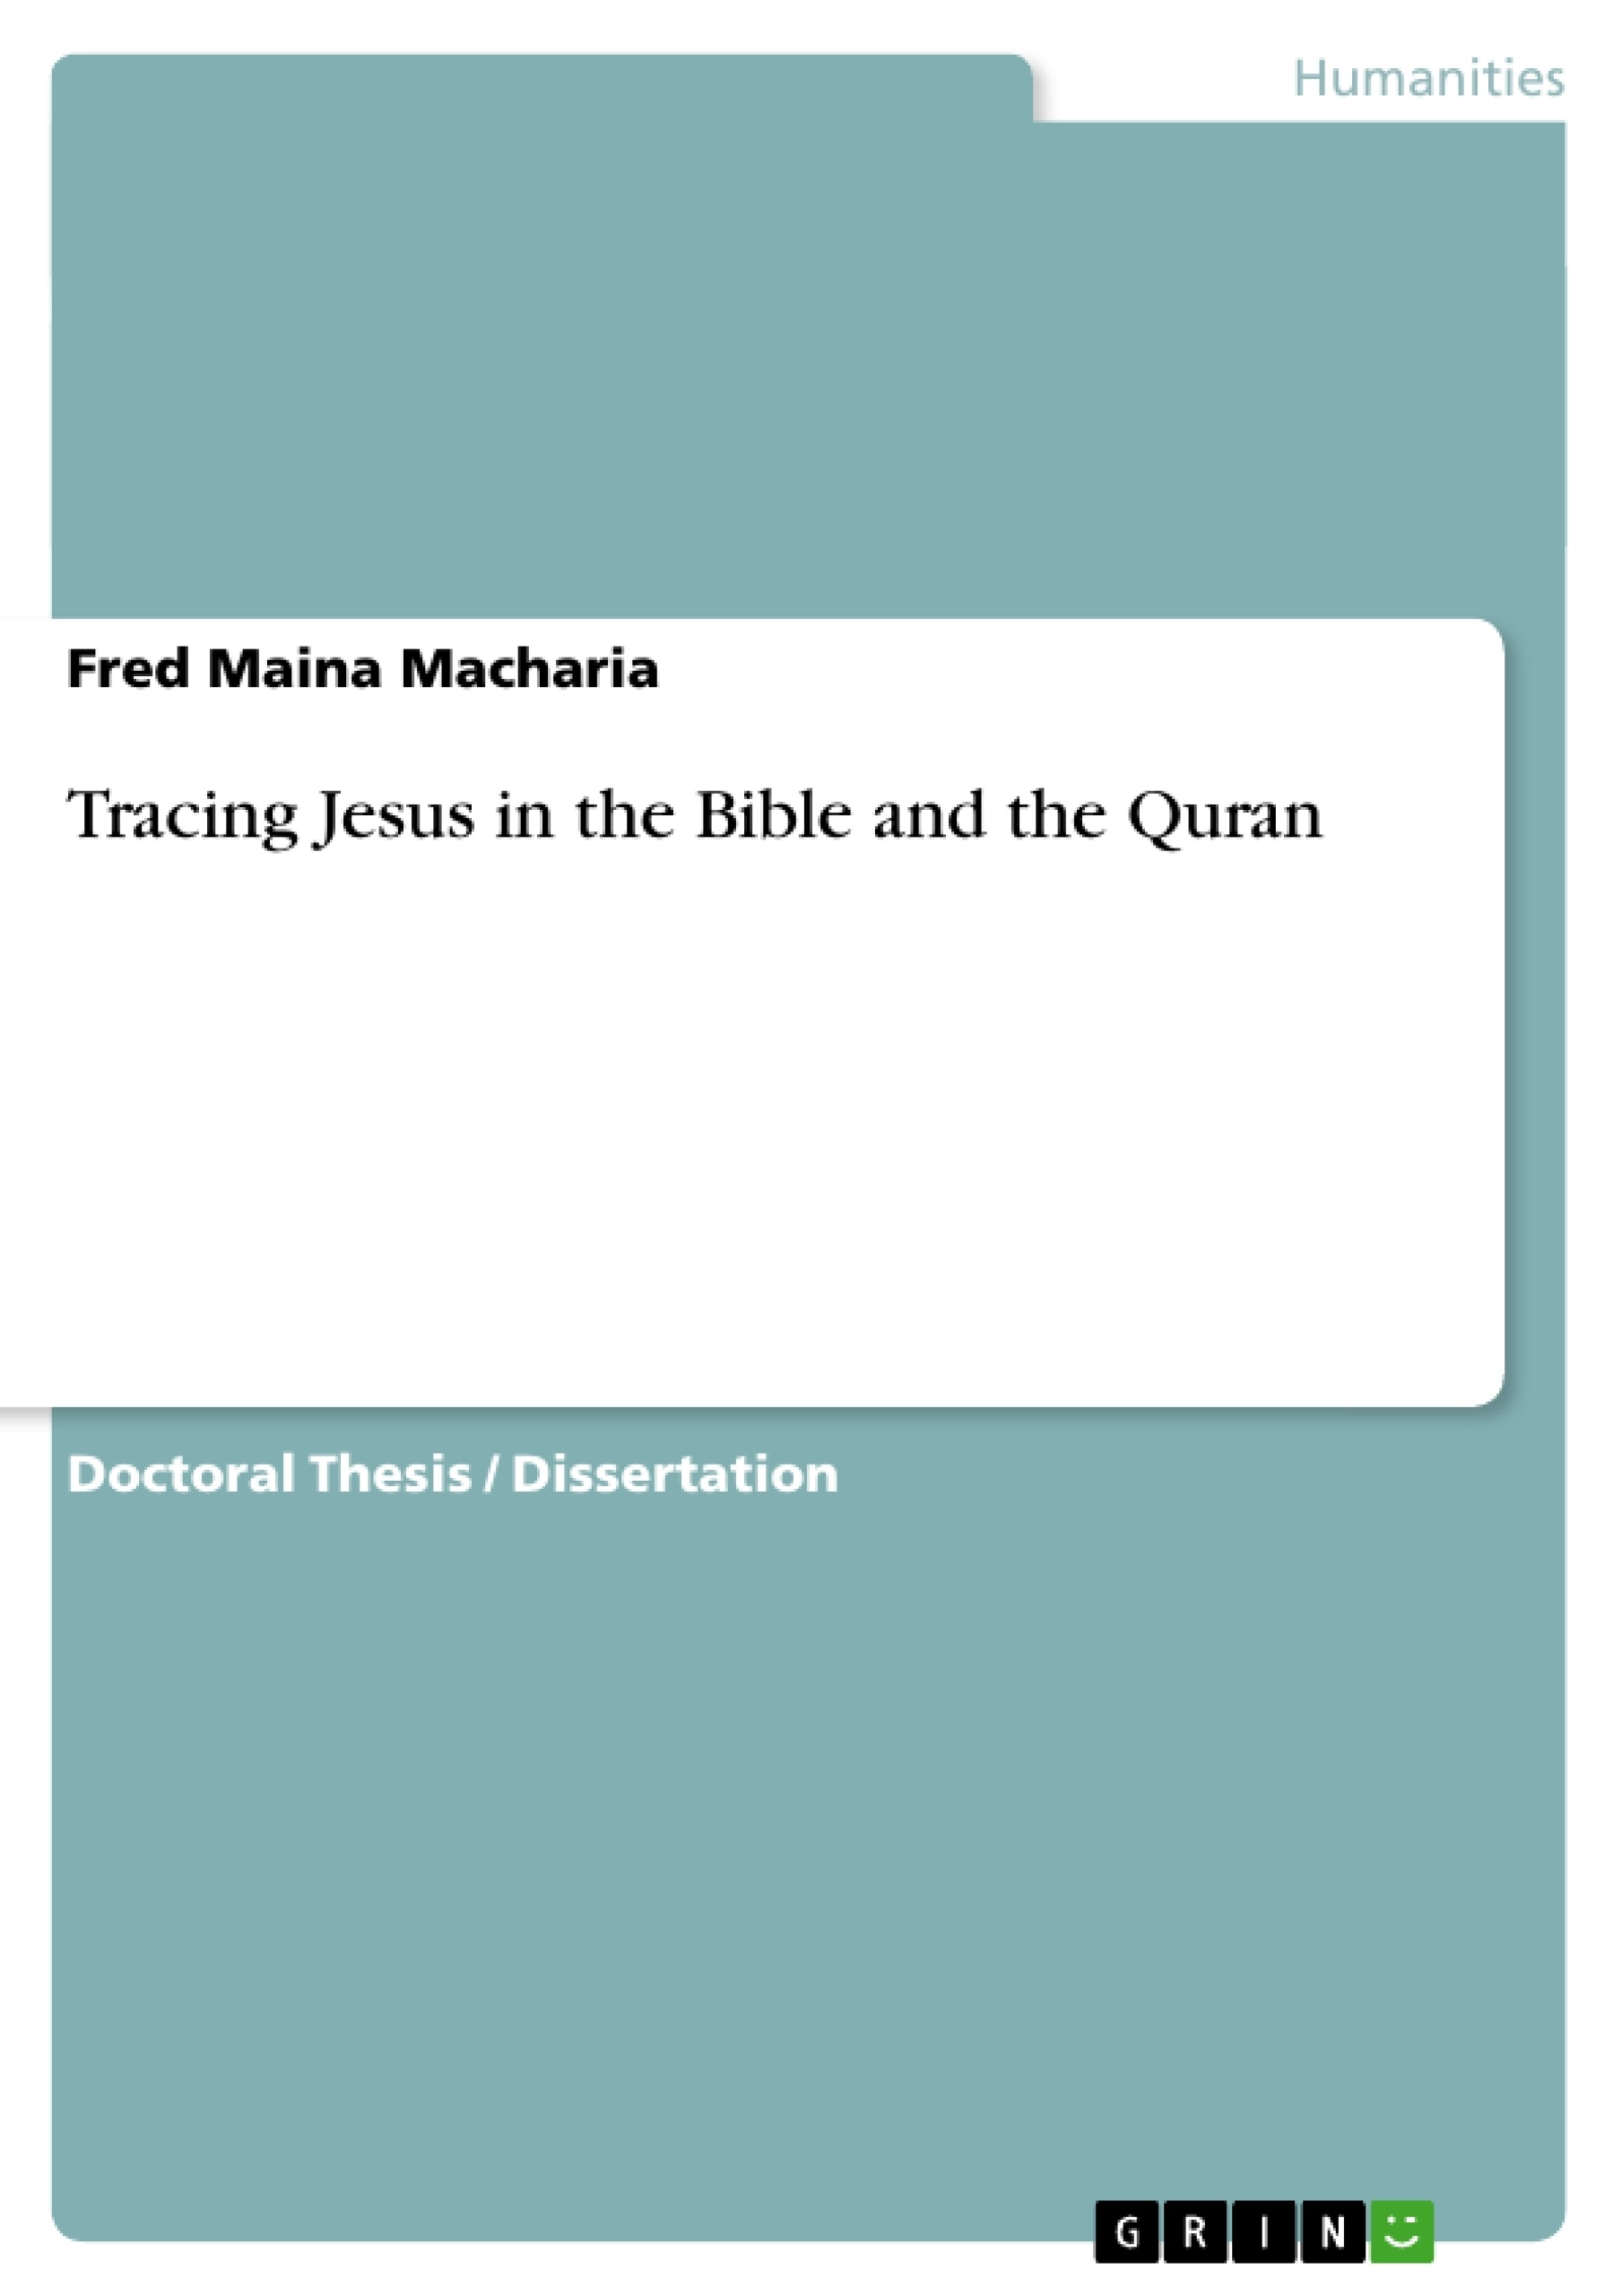 Title: Tracing Jesus in the Bible and the Quran